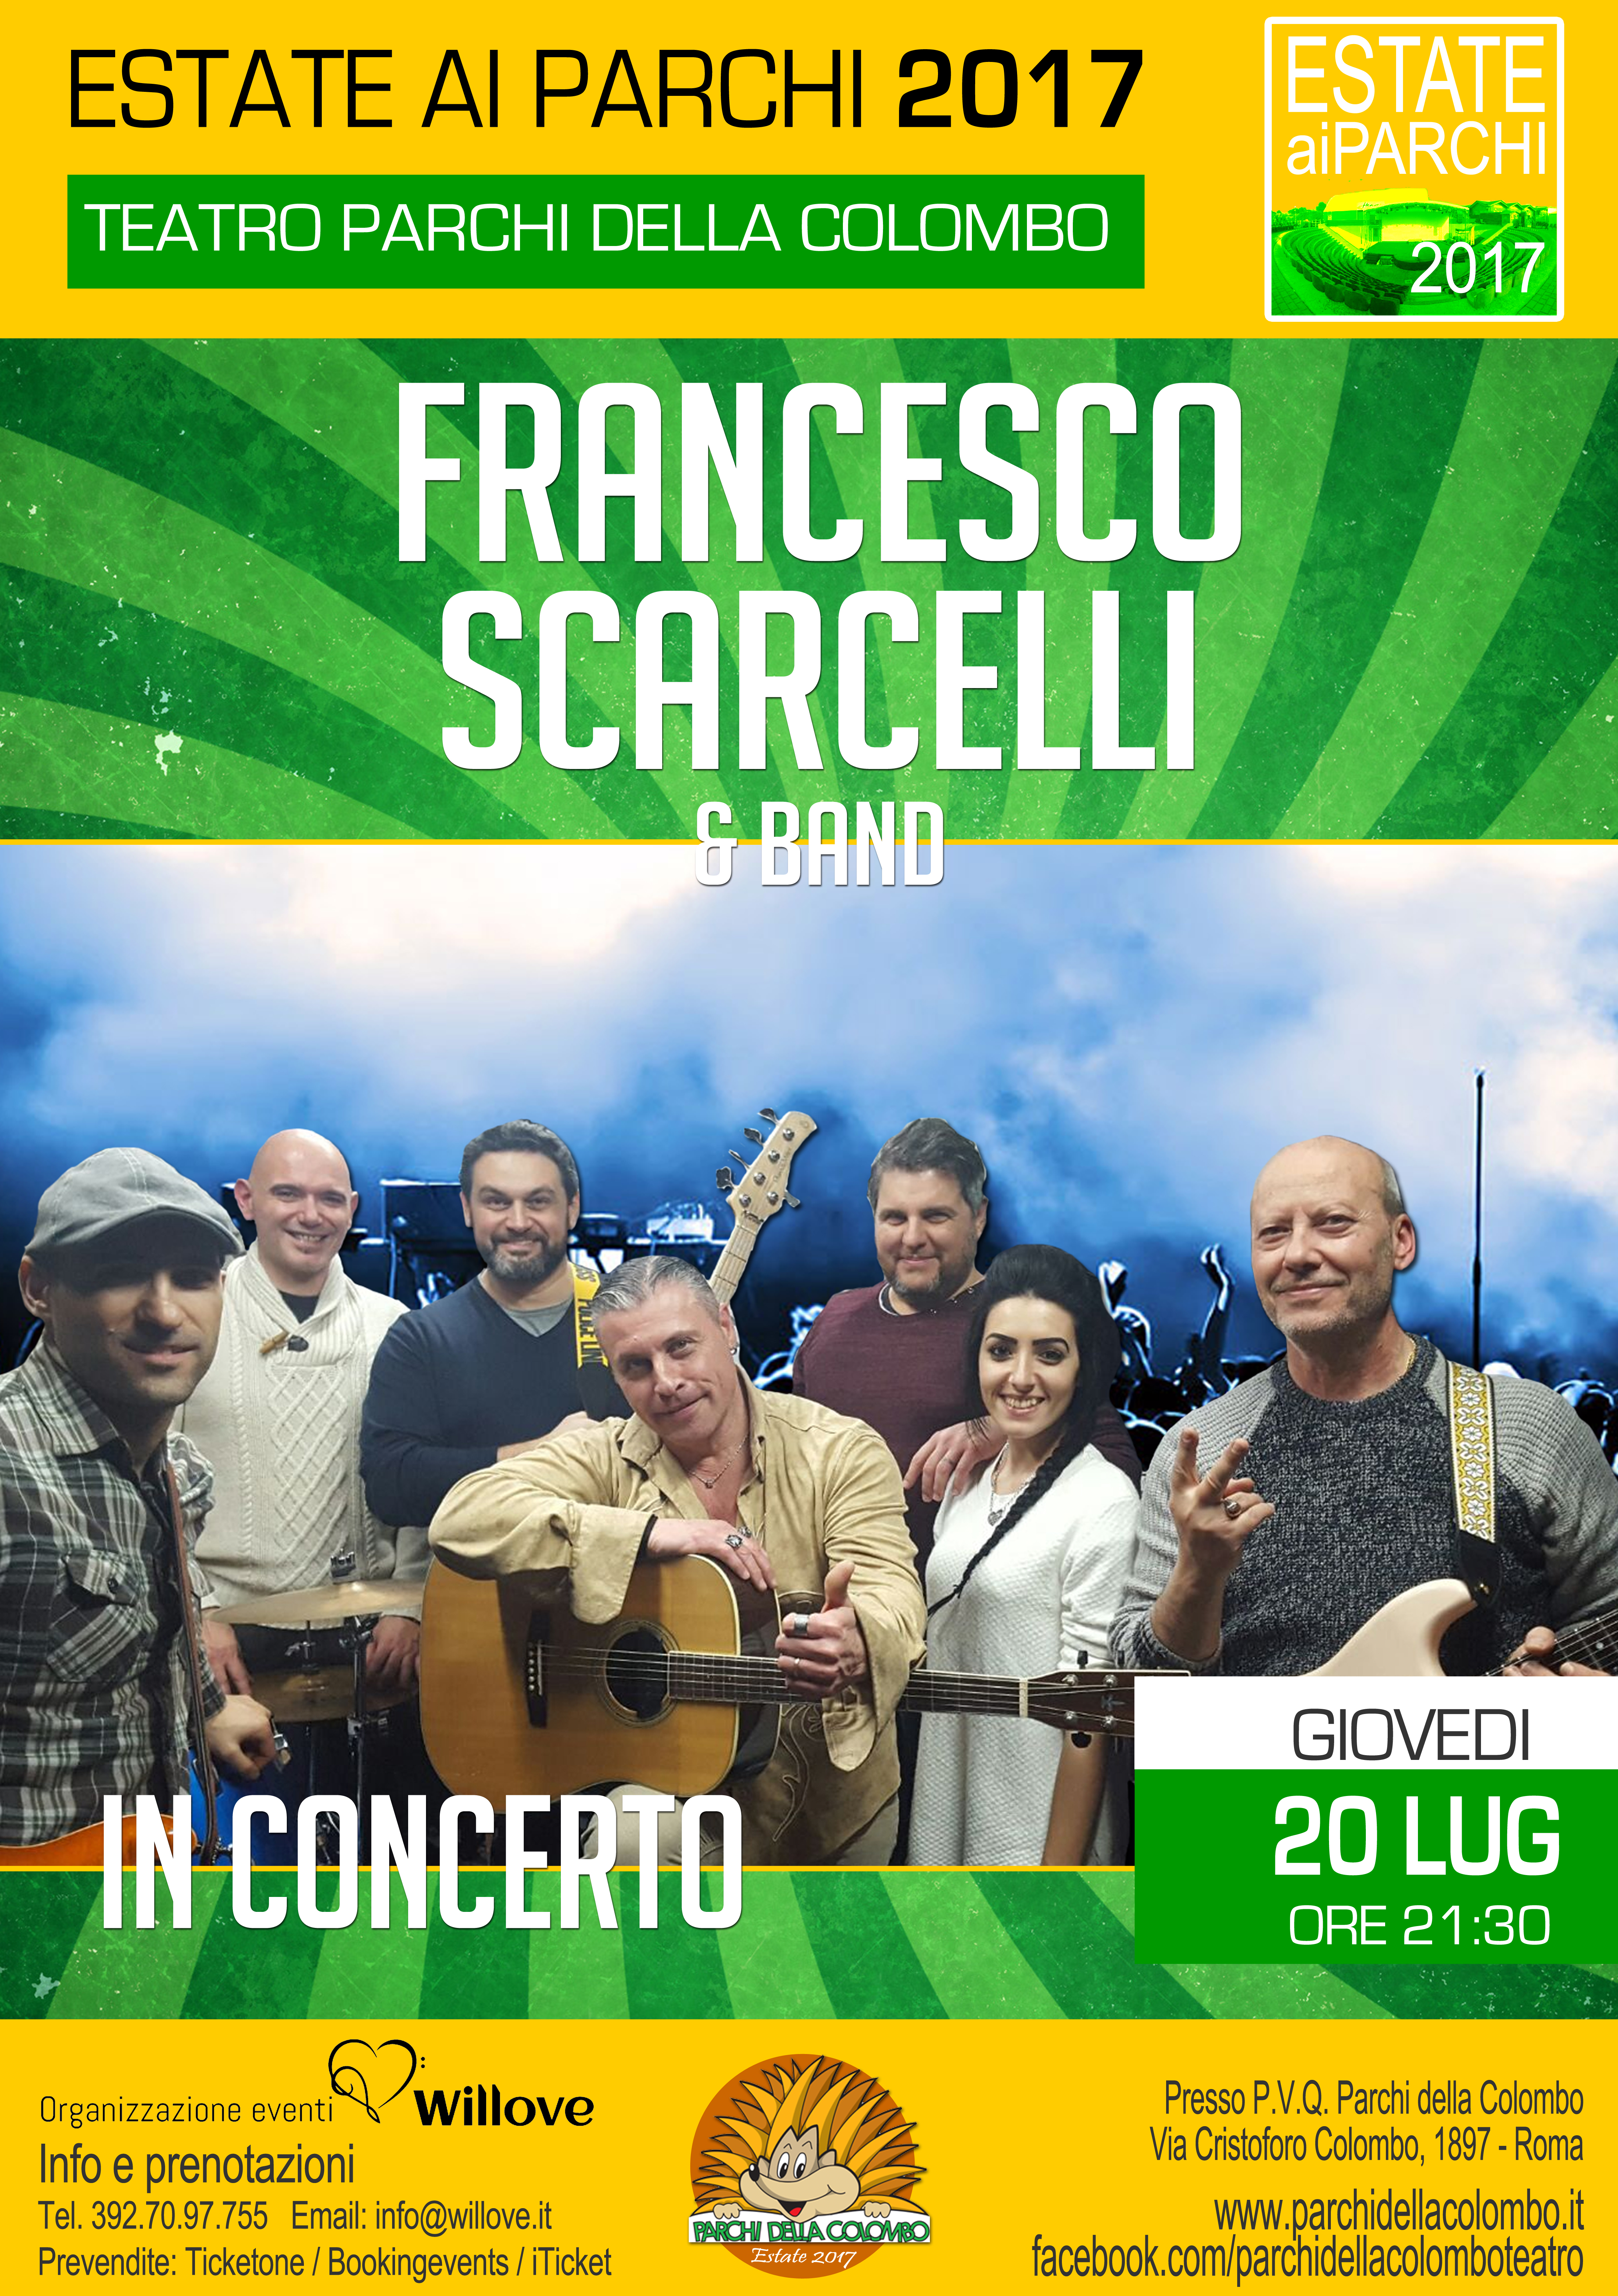 ESTATE AI PARCHI 2017  FRANCESCO SCARCELLI E BAND